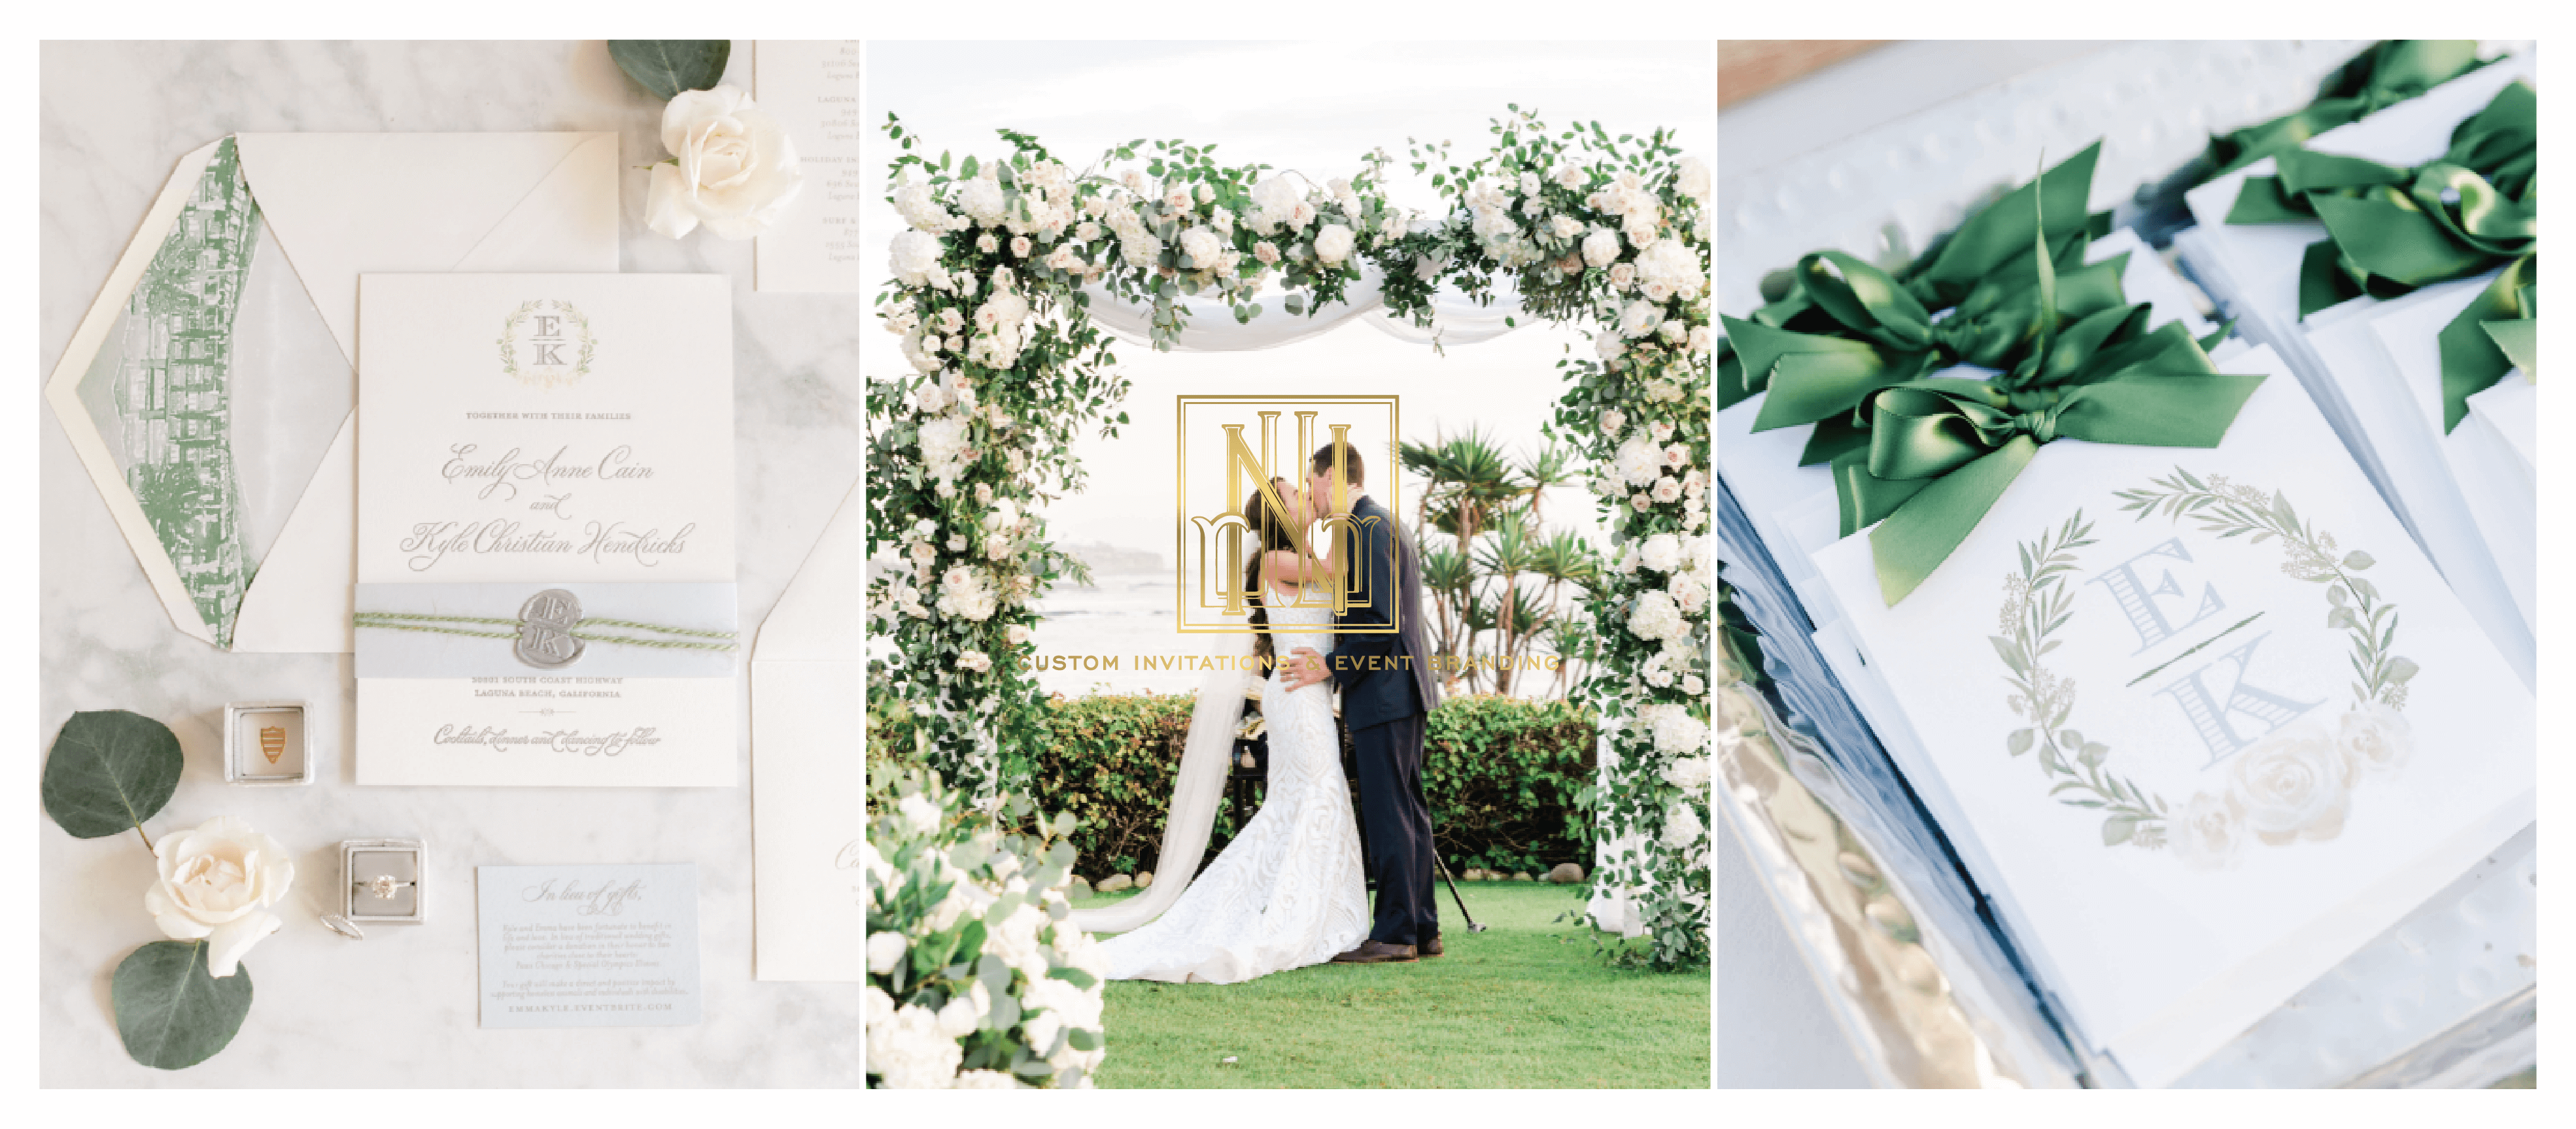 Custom Weddings & Event Design ⋆ Nico and Lala